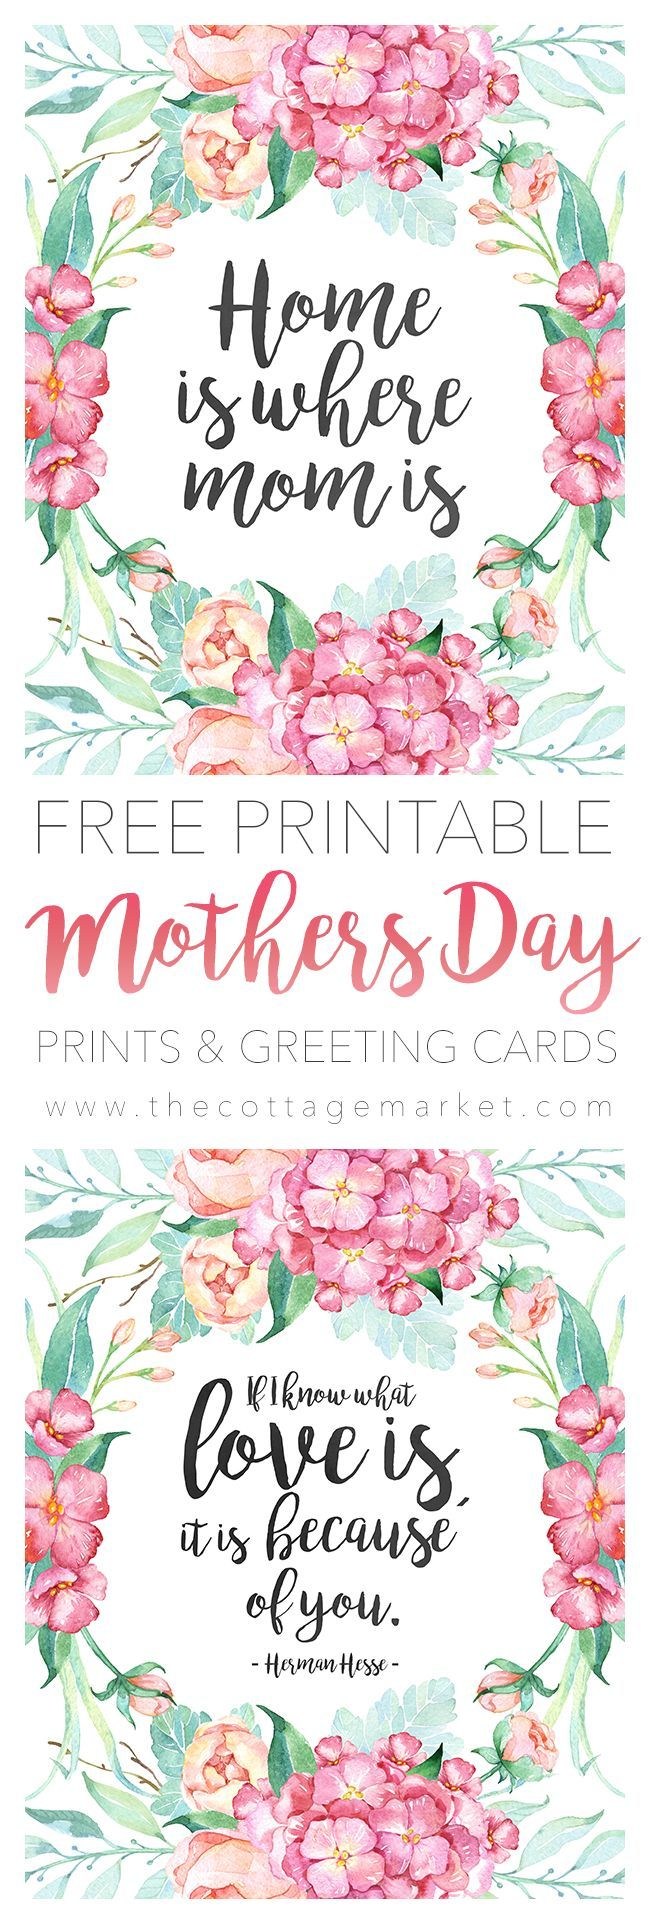 Free printable mothers day prints and greeting cards mothers day free printable mothers day prints and greeting cards kristyandbryce Gallery